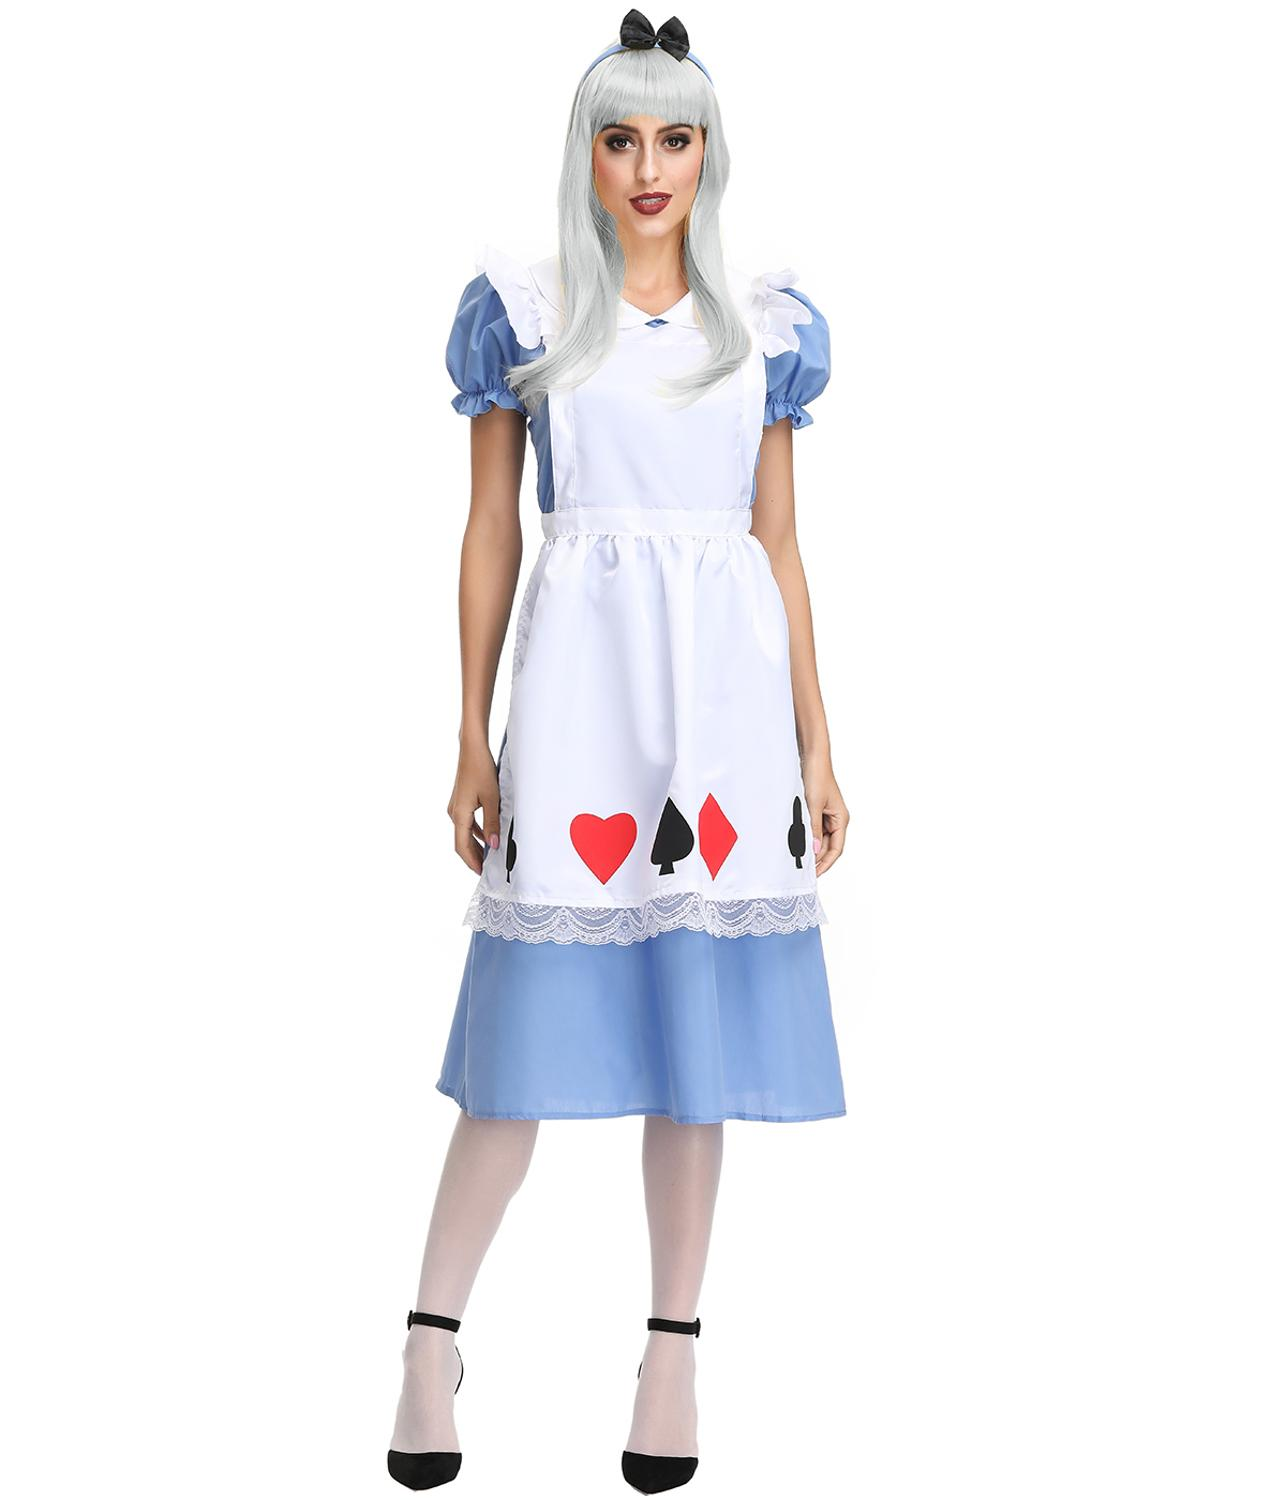 Alice in Wonderland Maid Lolita Blue Dress Costume For Halloween Cosplay Party